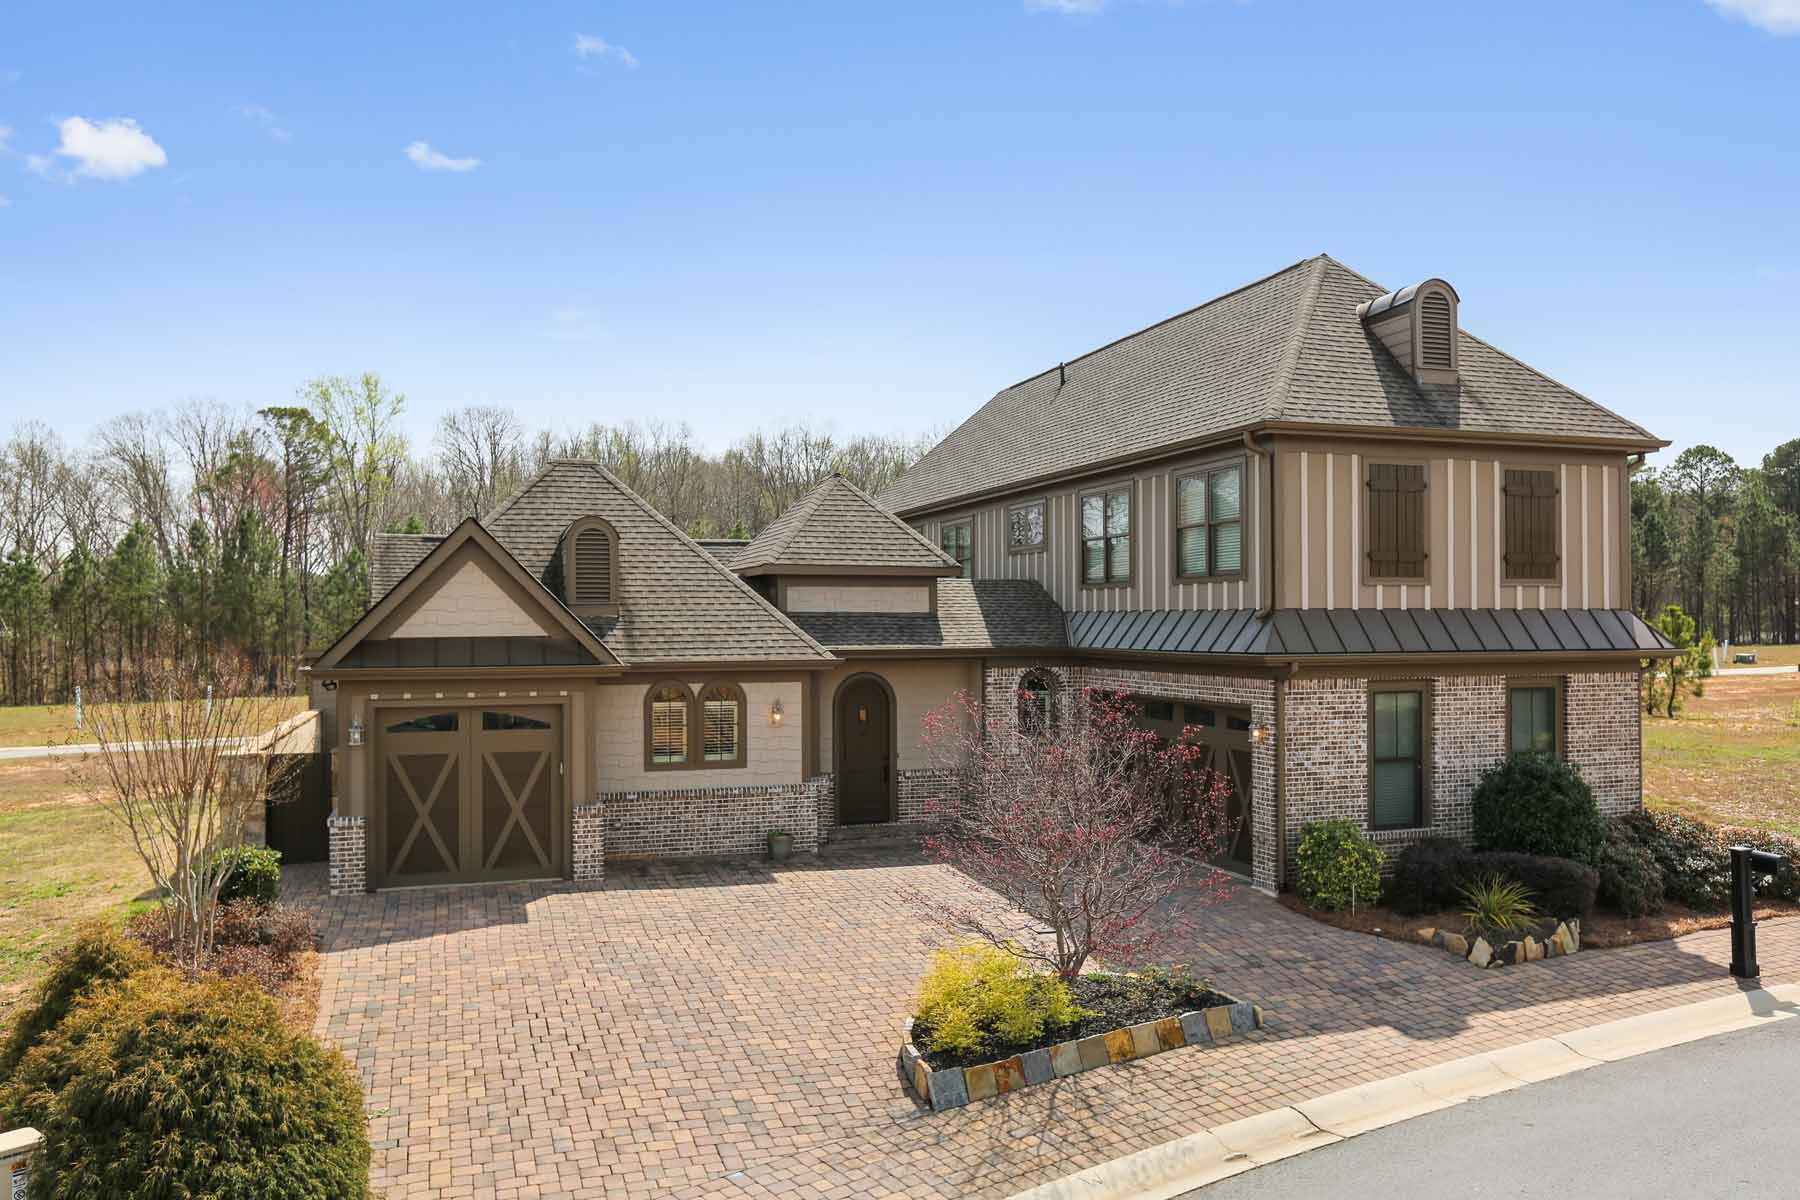 Maison unifamiliale pour l Vente à Stunning Courtyard Home 130 Batten Board Way Woodstock, Georgia, 30189 États-Unis